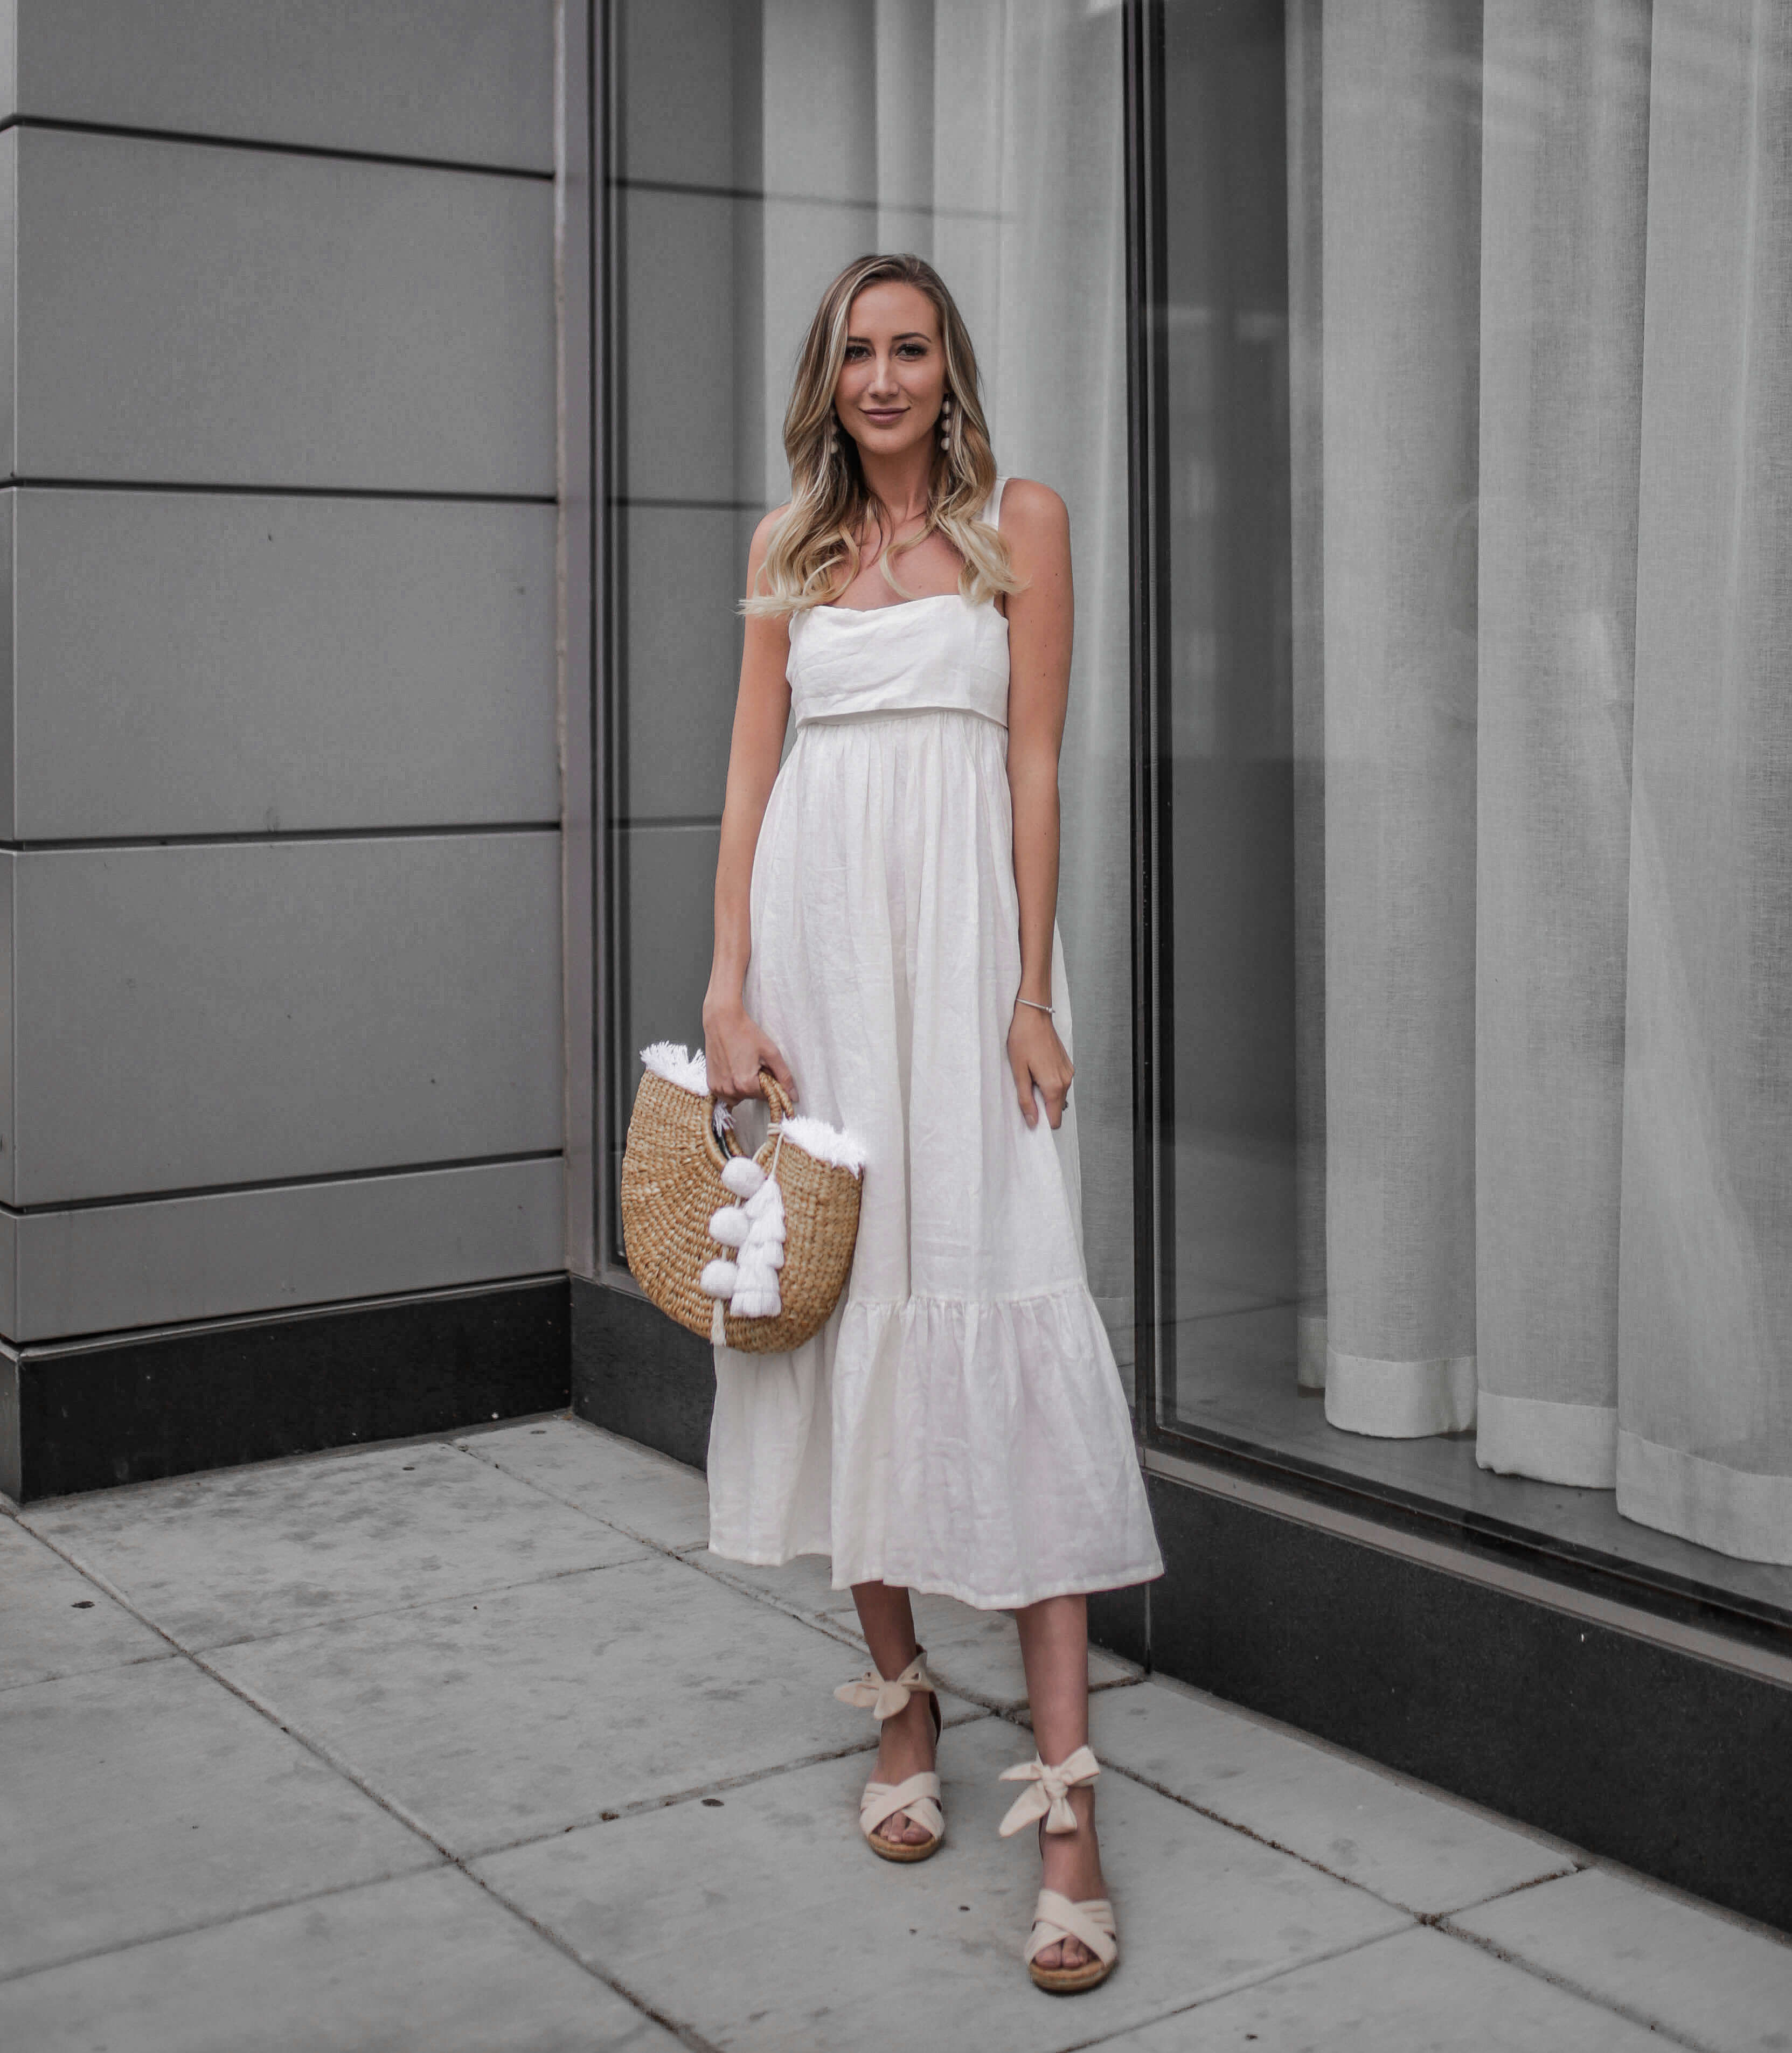 Carly Cristman wearing a summer linen dress with wedges, Summer Trends 2018, CAARA Forget Me Not Linen Midi Dress, UGG Traci Espadrille Wedge Sandal, basket bag